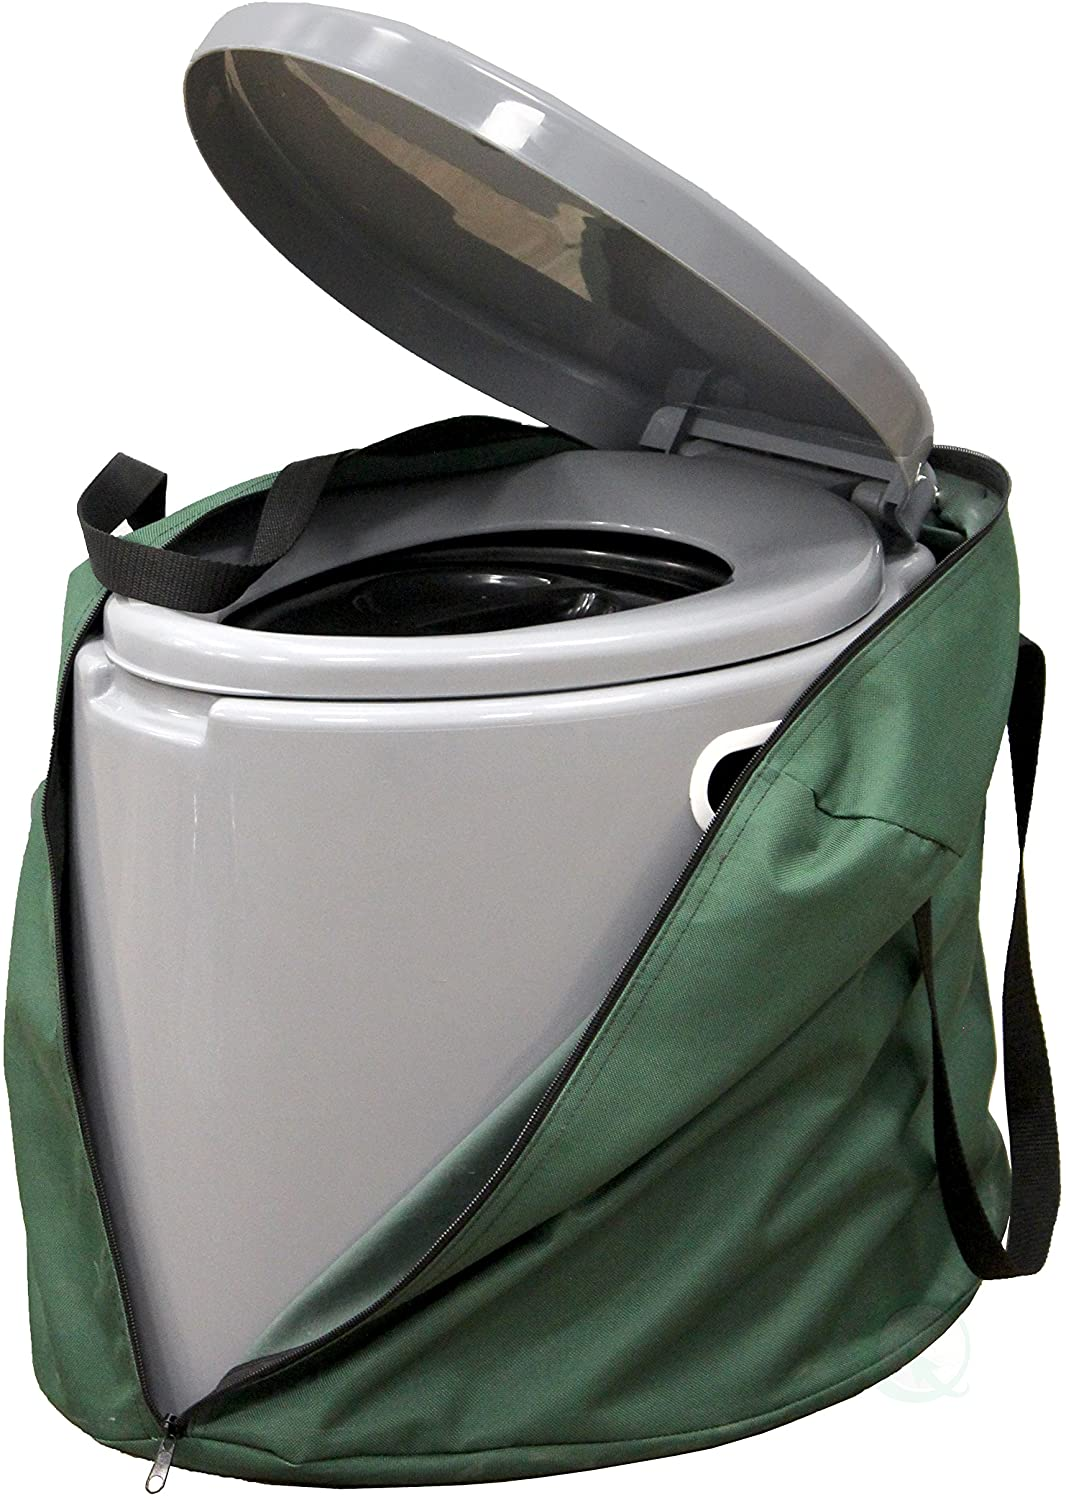 playberg portable travel toilet for hiking or camping